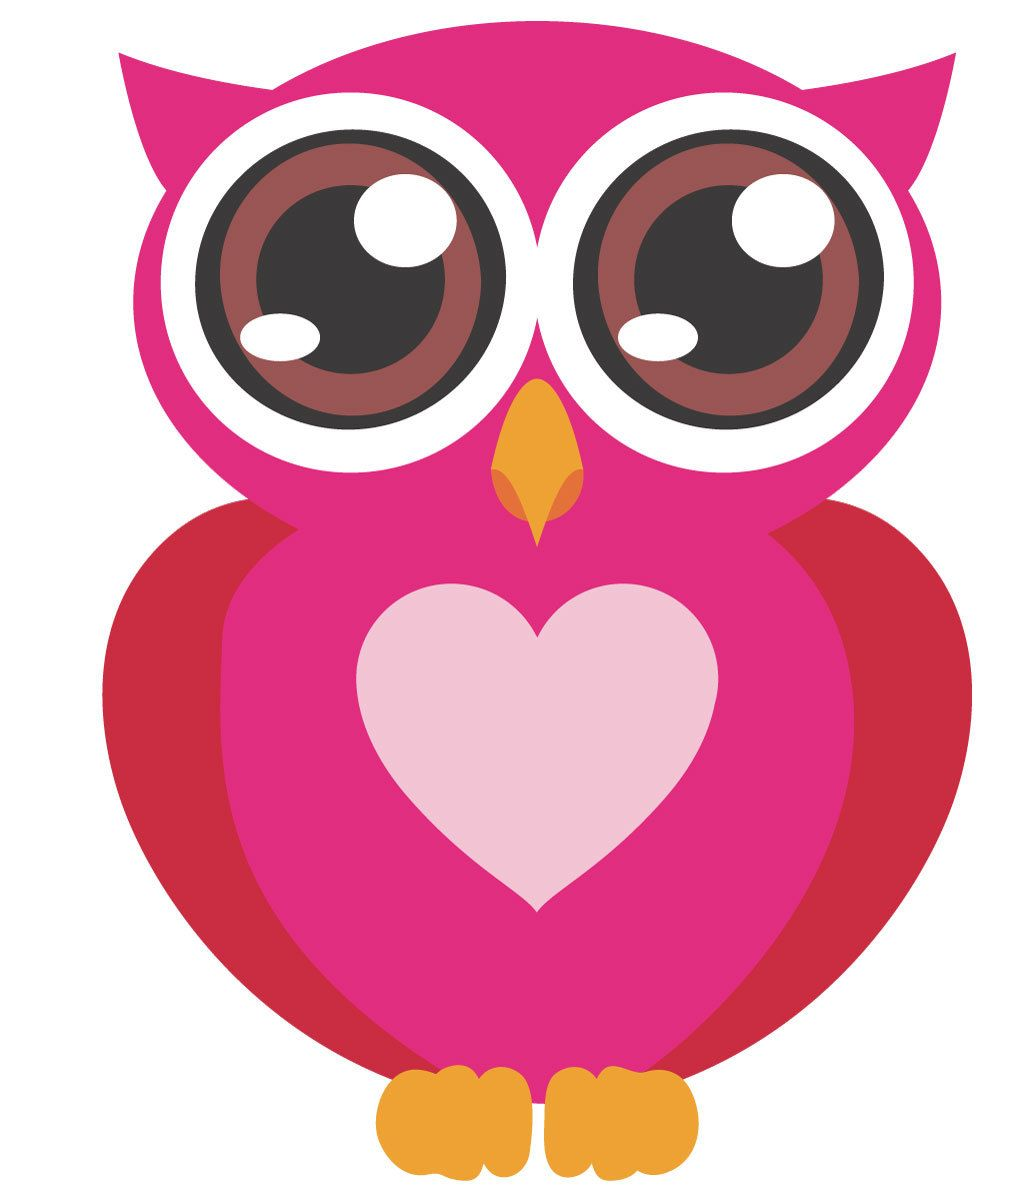 Pink Owl with Big Eyes Wall Stickers.